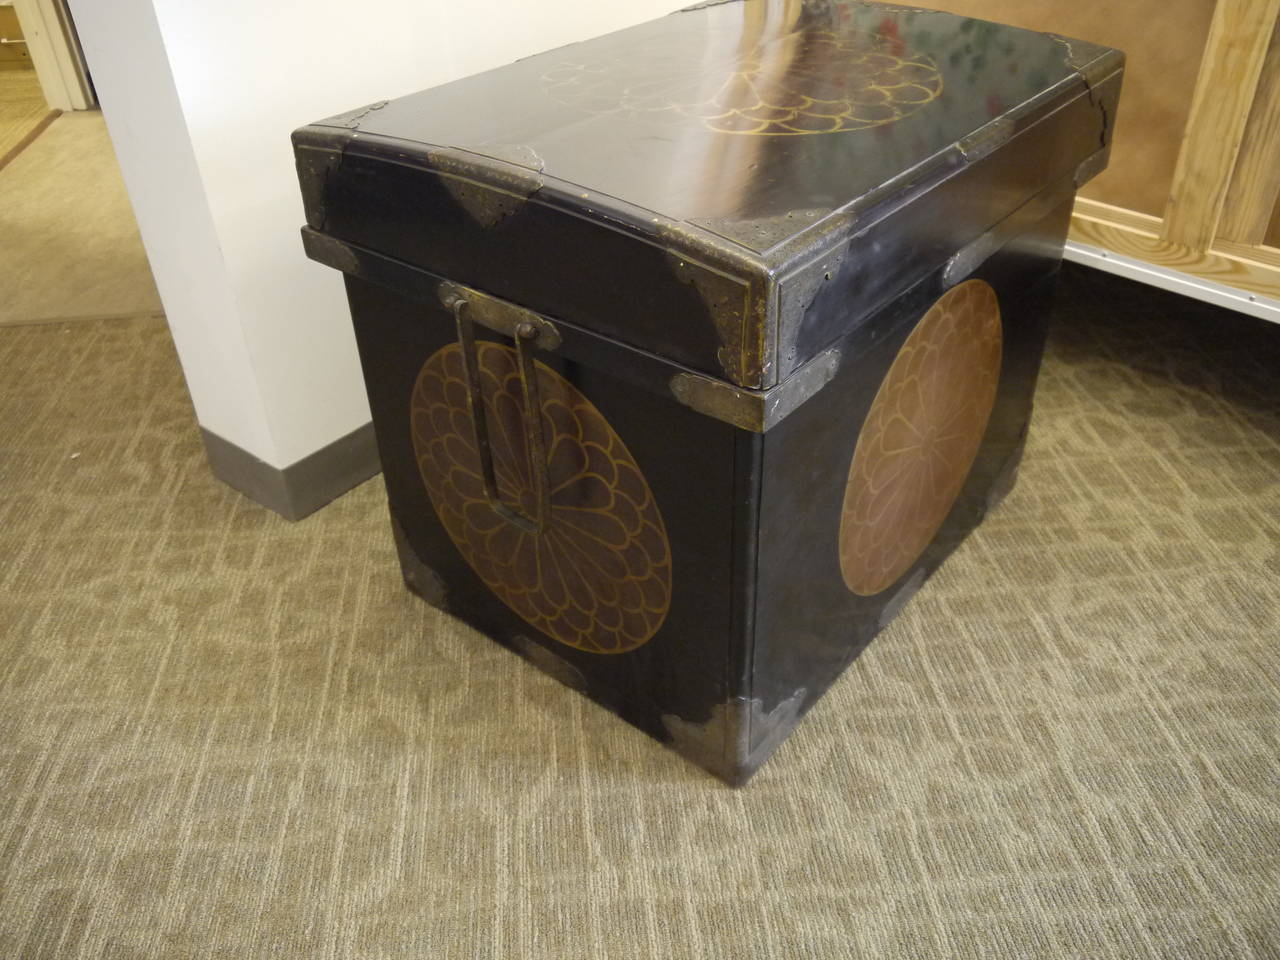 Huge Japanese Lacquer Trunk with Gold Crests For Sale 1